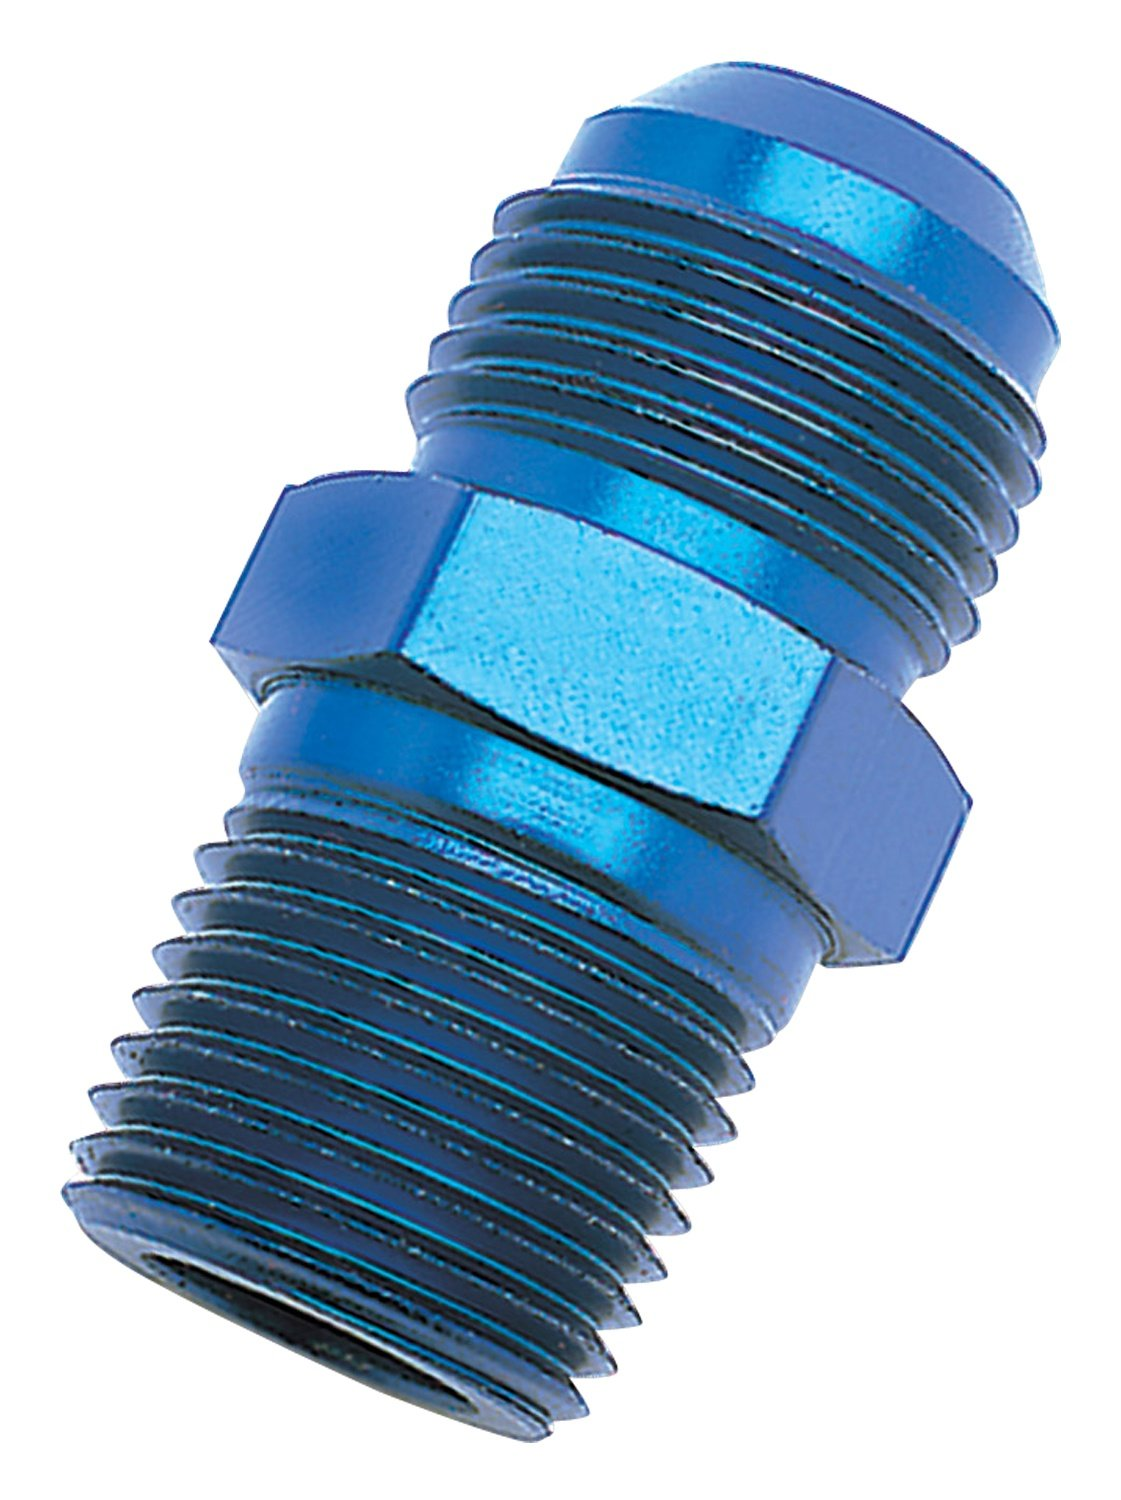 6AN Flare to 1//2 Pipe Pressure Adapter Russell 670150 Blue Anodized Aluminum